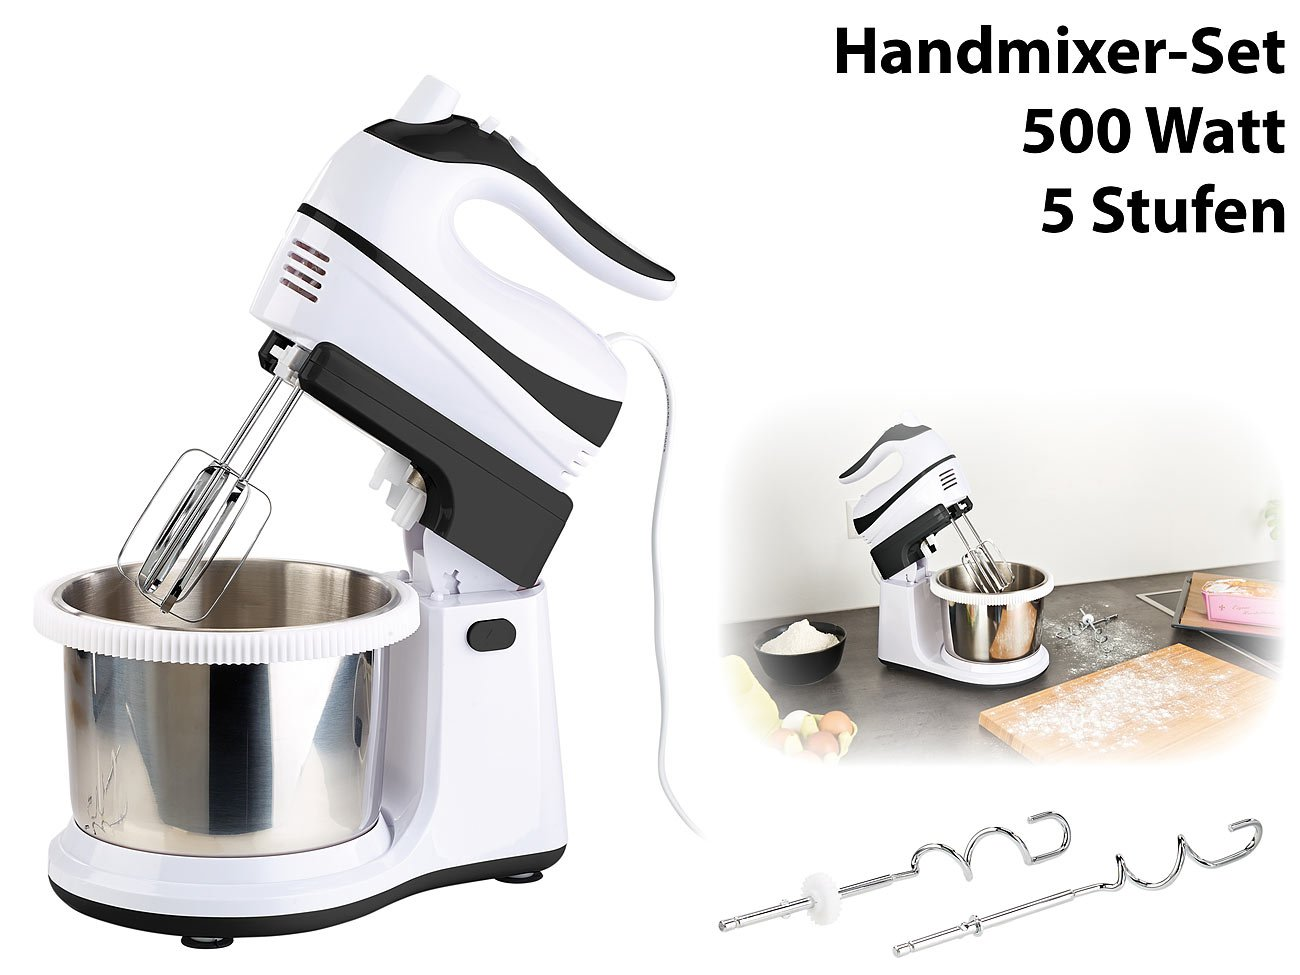 Amazon.de: Rosenstein & Söhne Küchenmaschine: Handmixer-Set ...